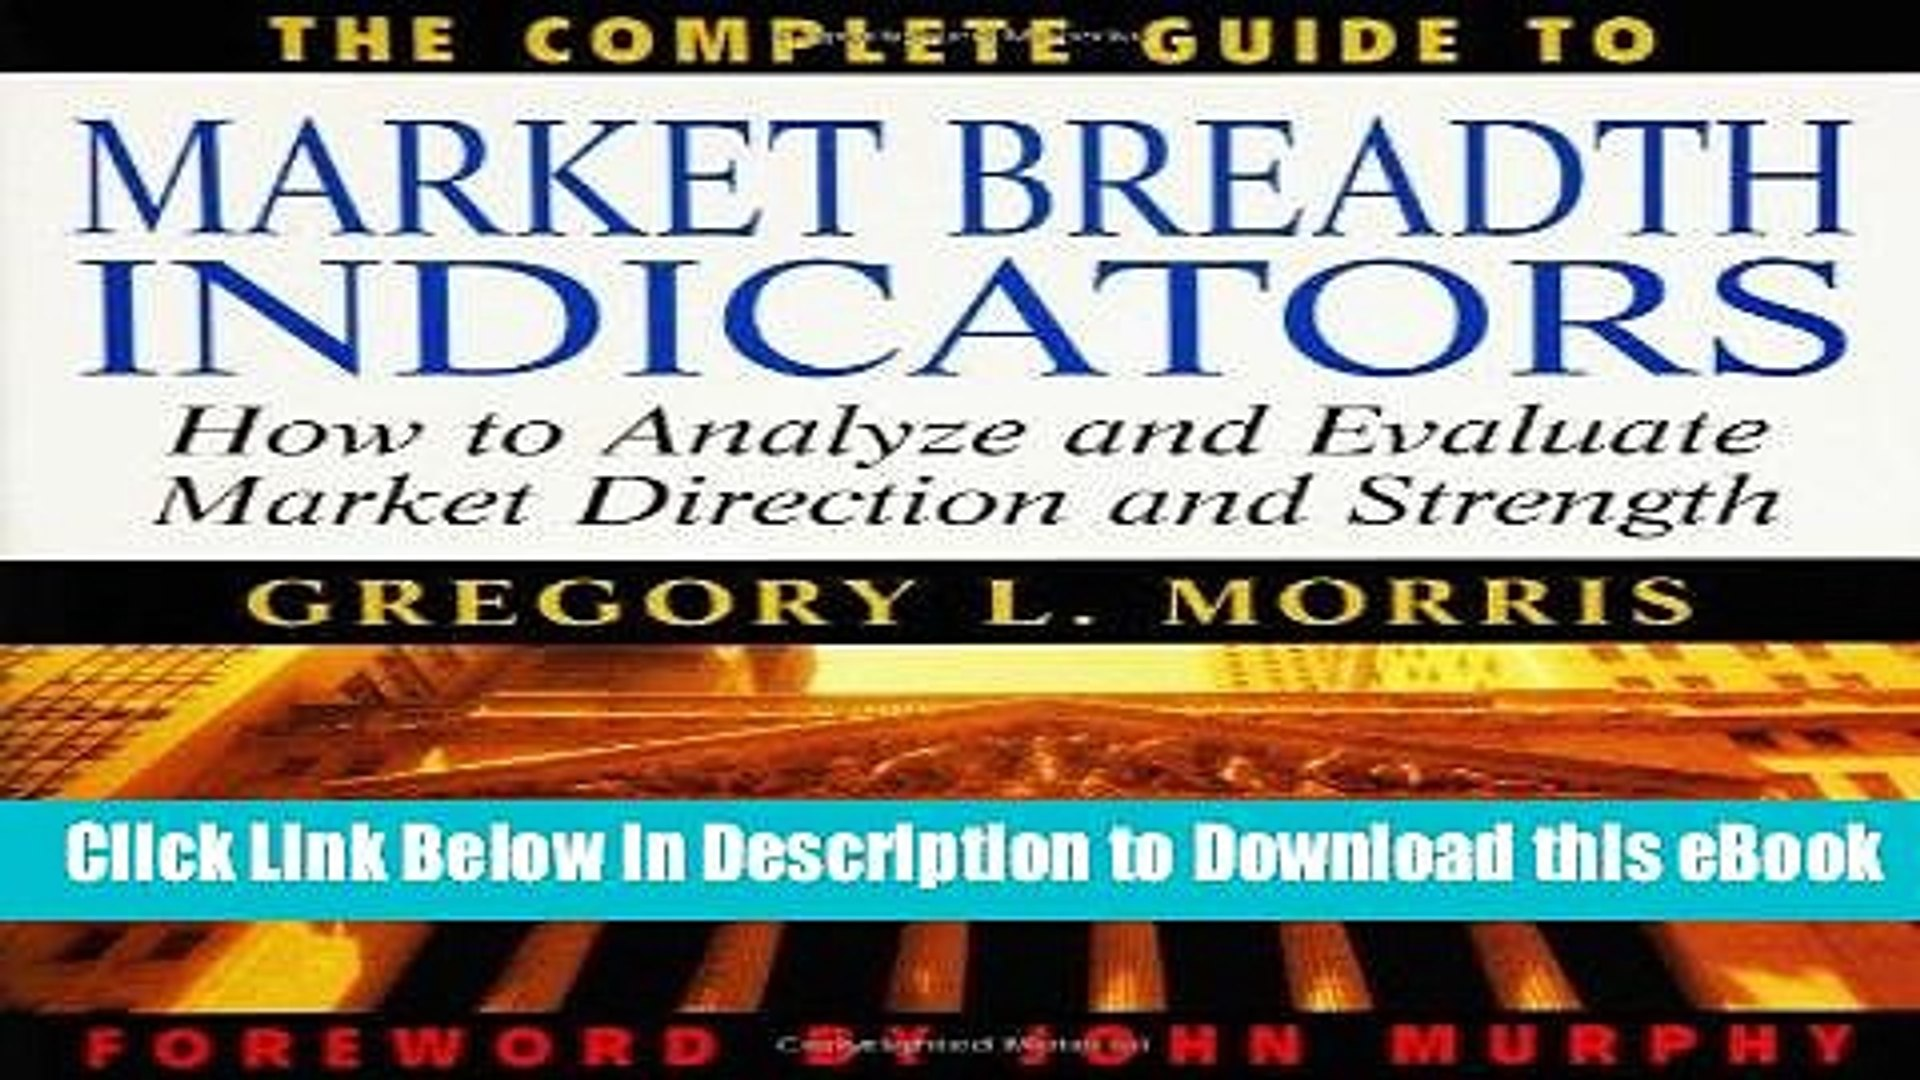 [Read Book] The Complete Guide to Market Breadth Indicators: How to Analyze and Evaluate market